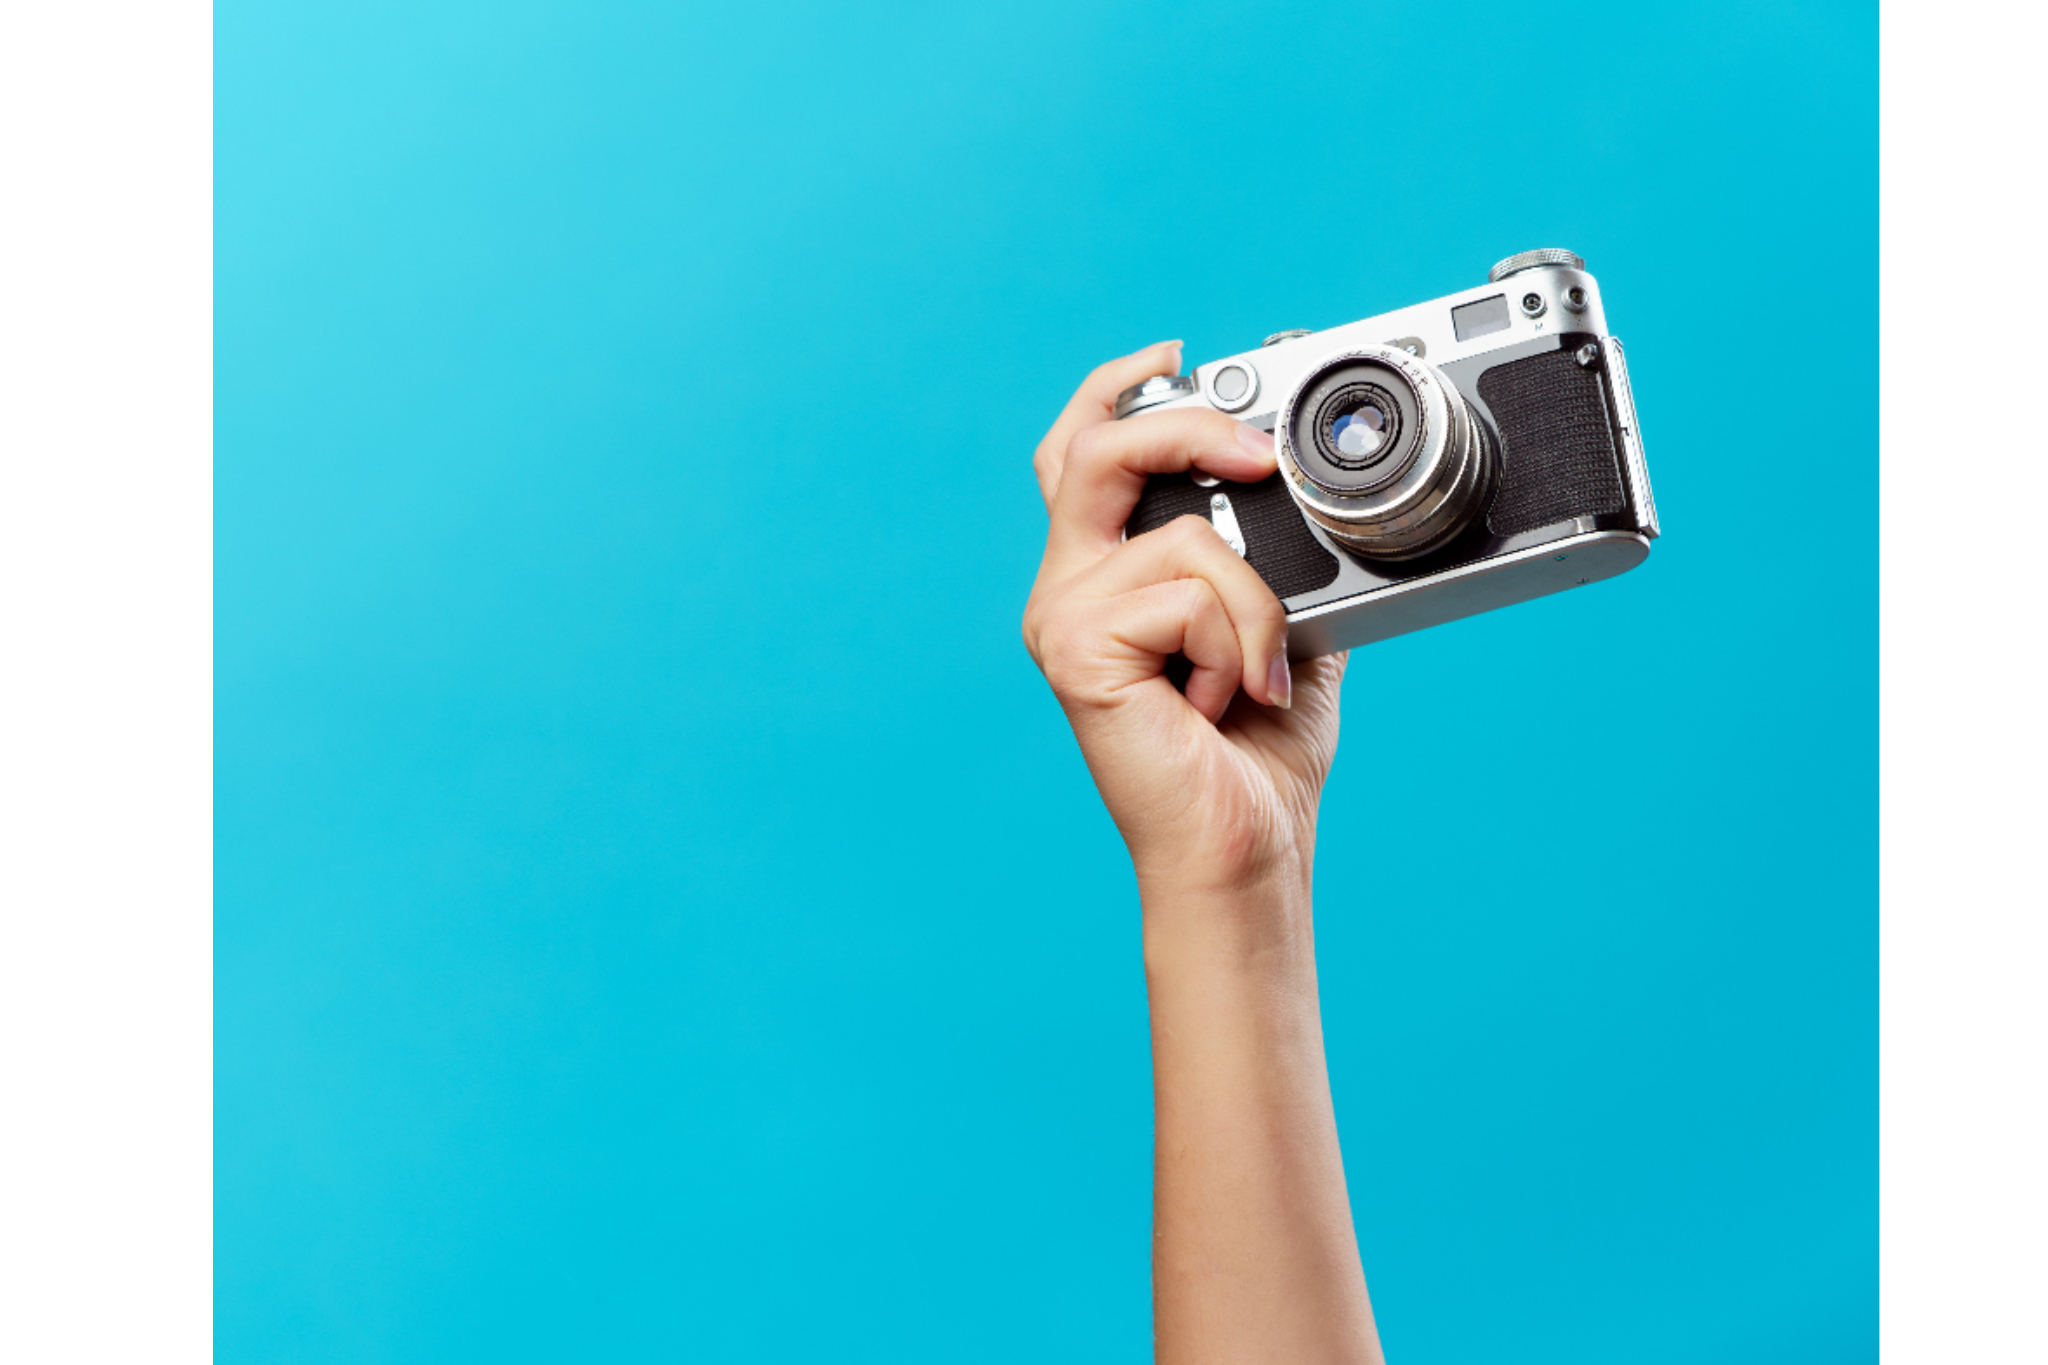 stock photo of a camera in picsart